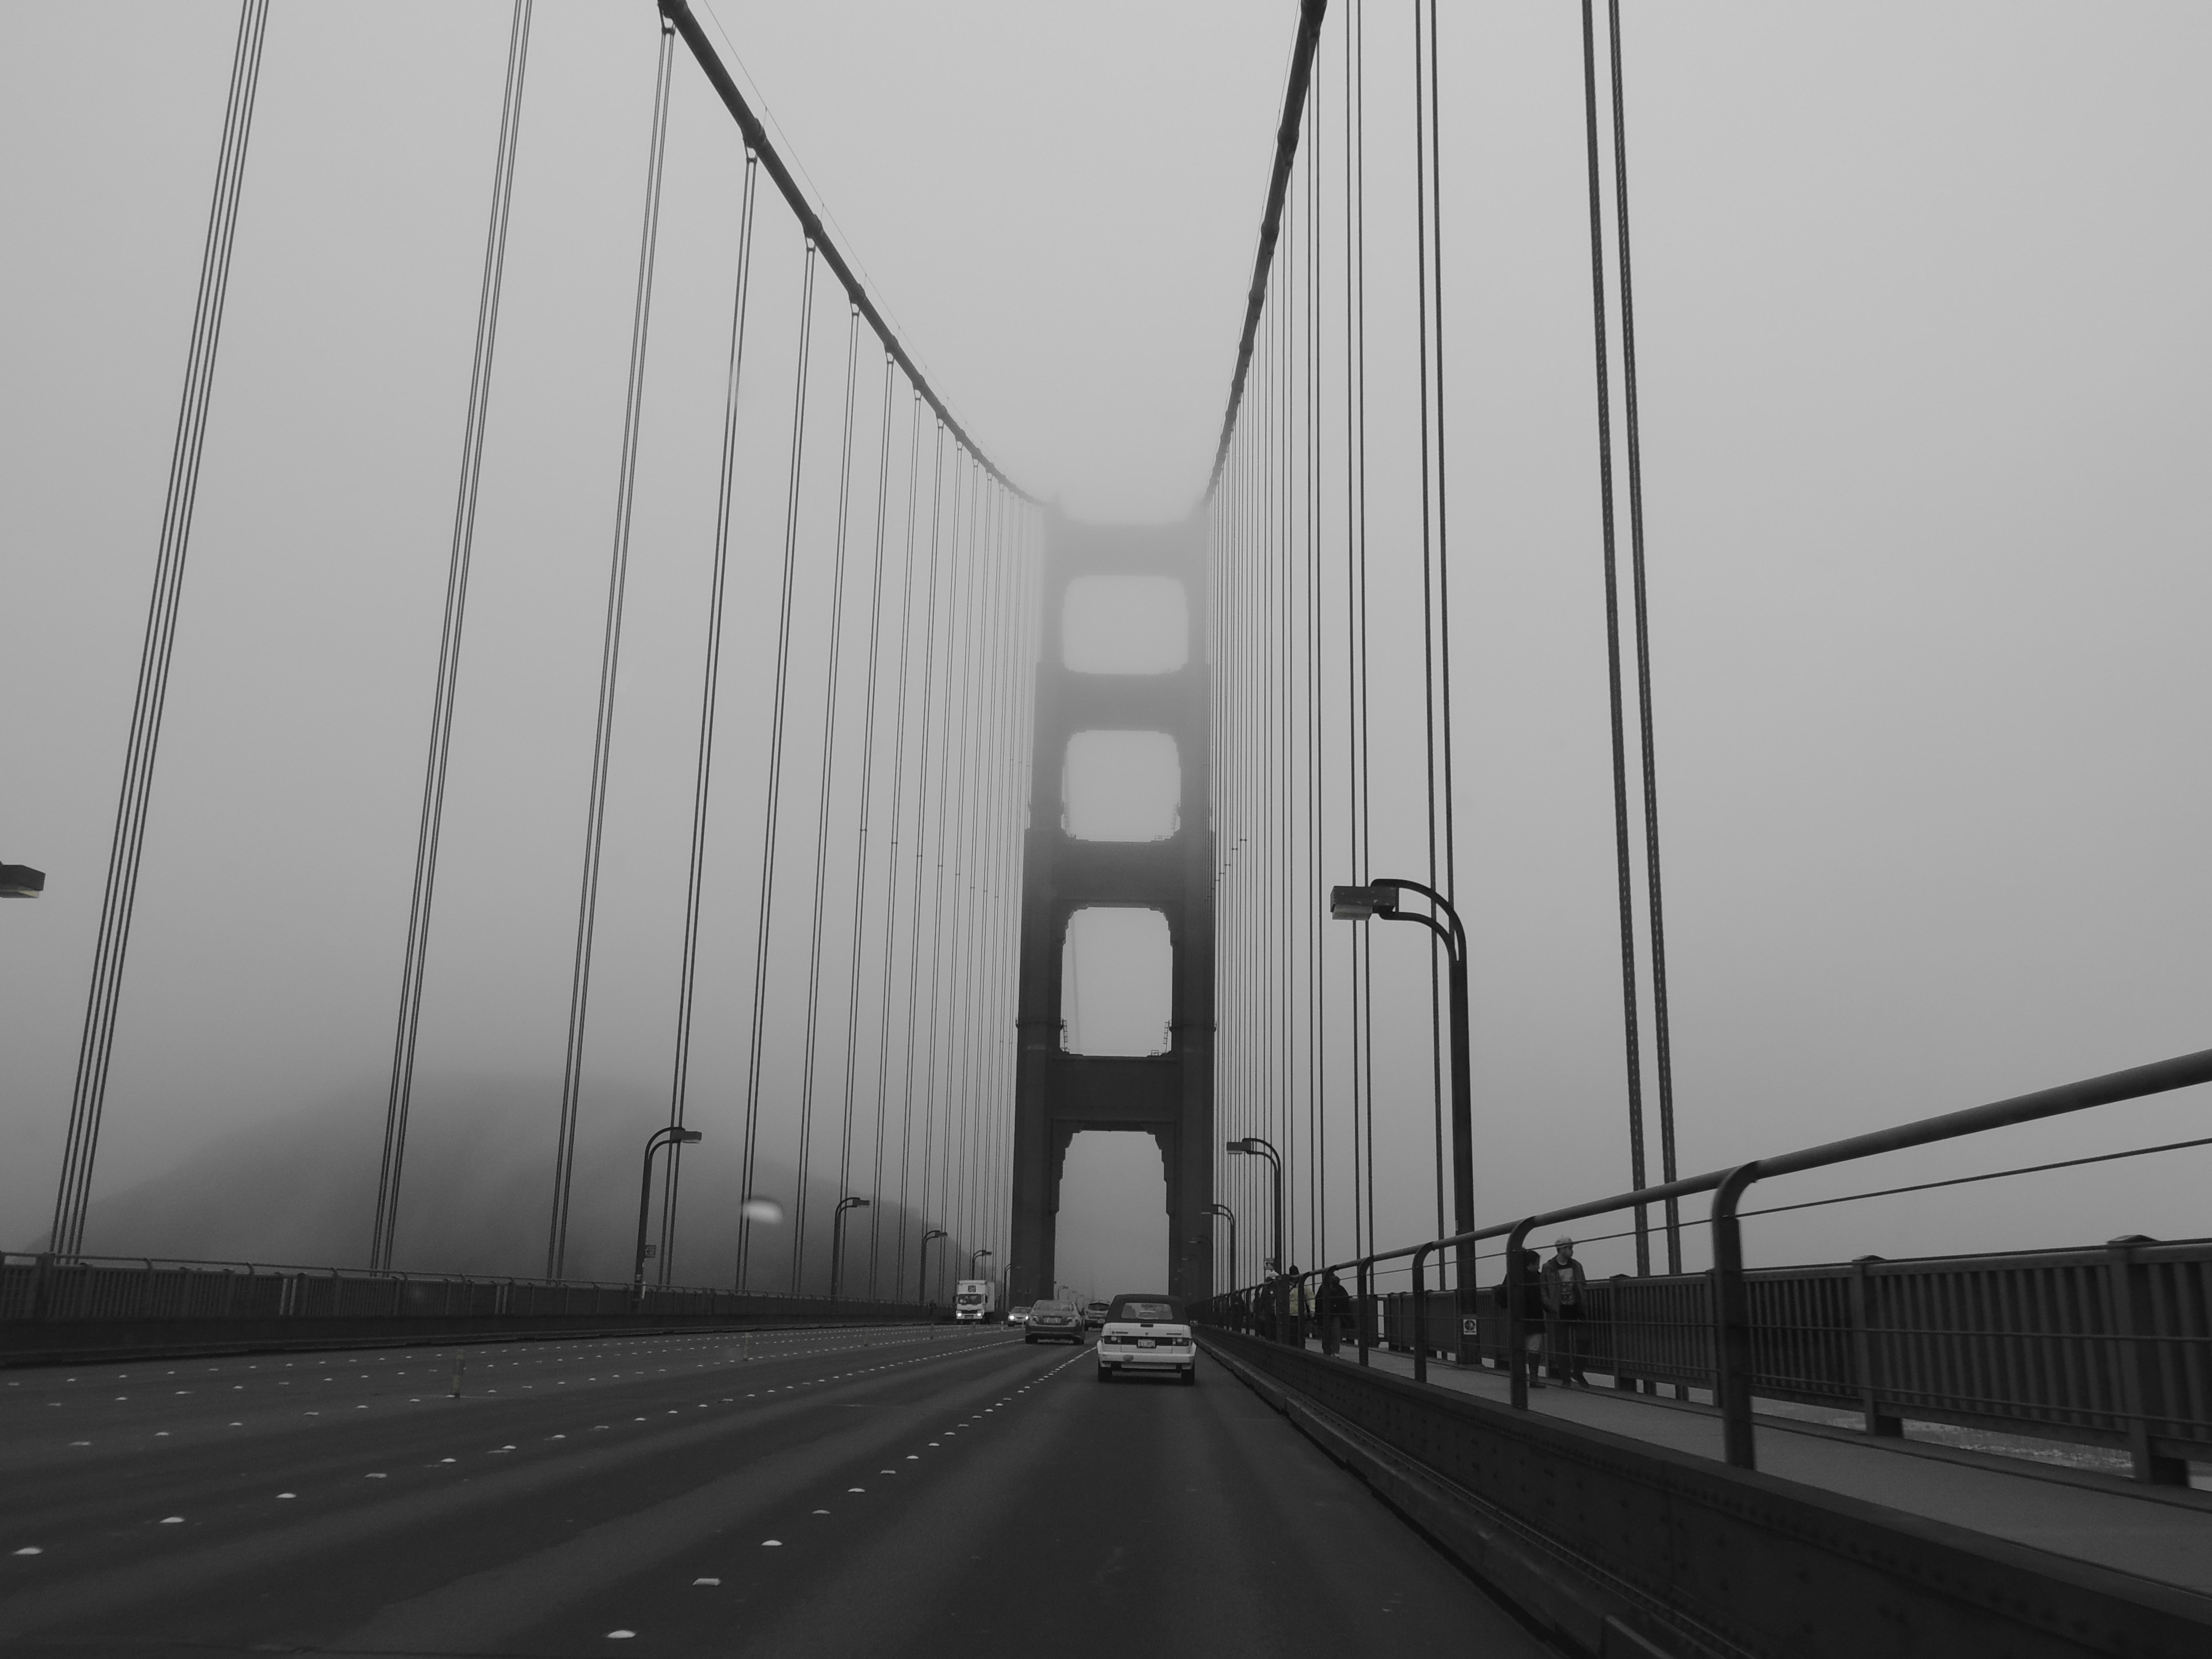 cars on bridge grayscale photo